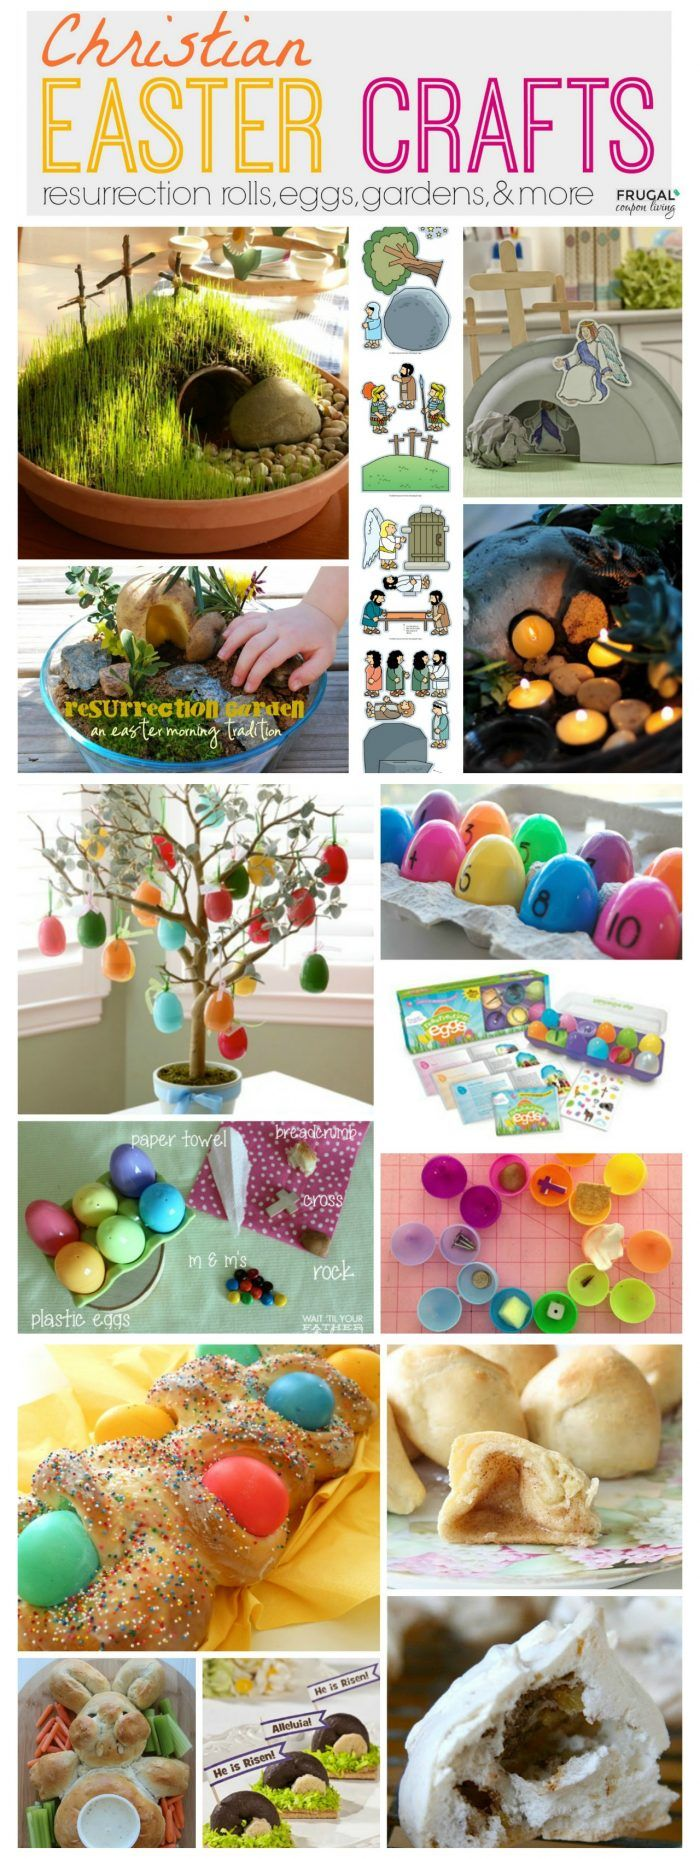 Christian easter decorations for the home - Spring Easter Home Decor Ideas